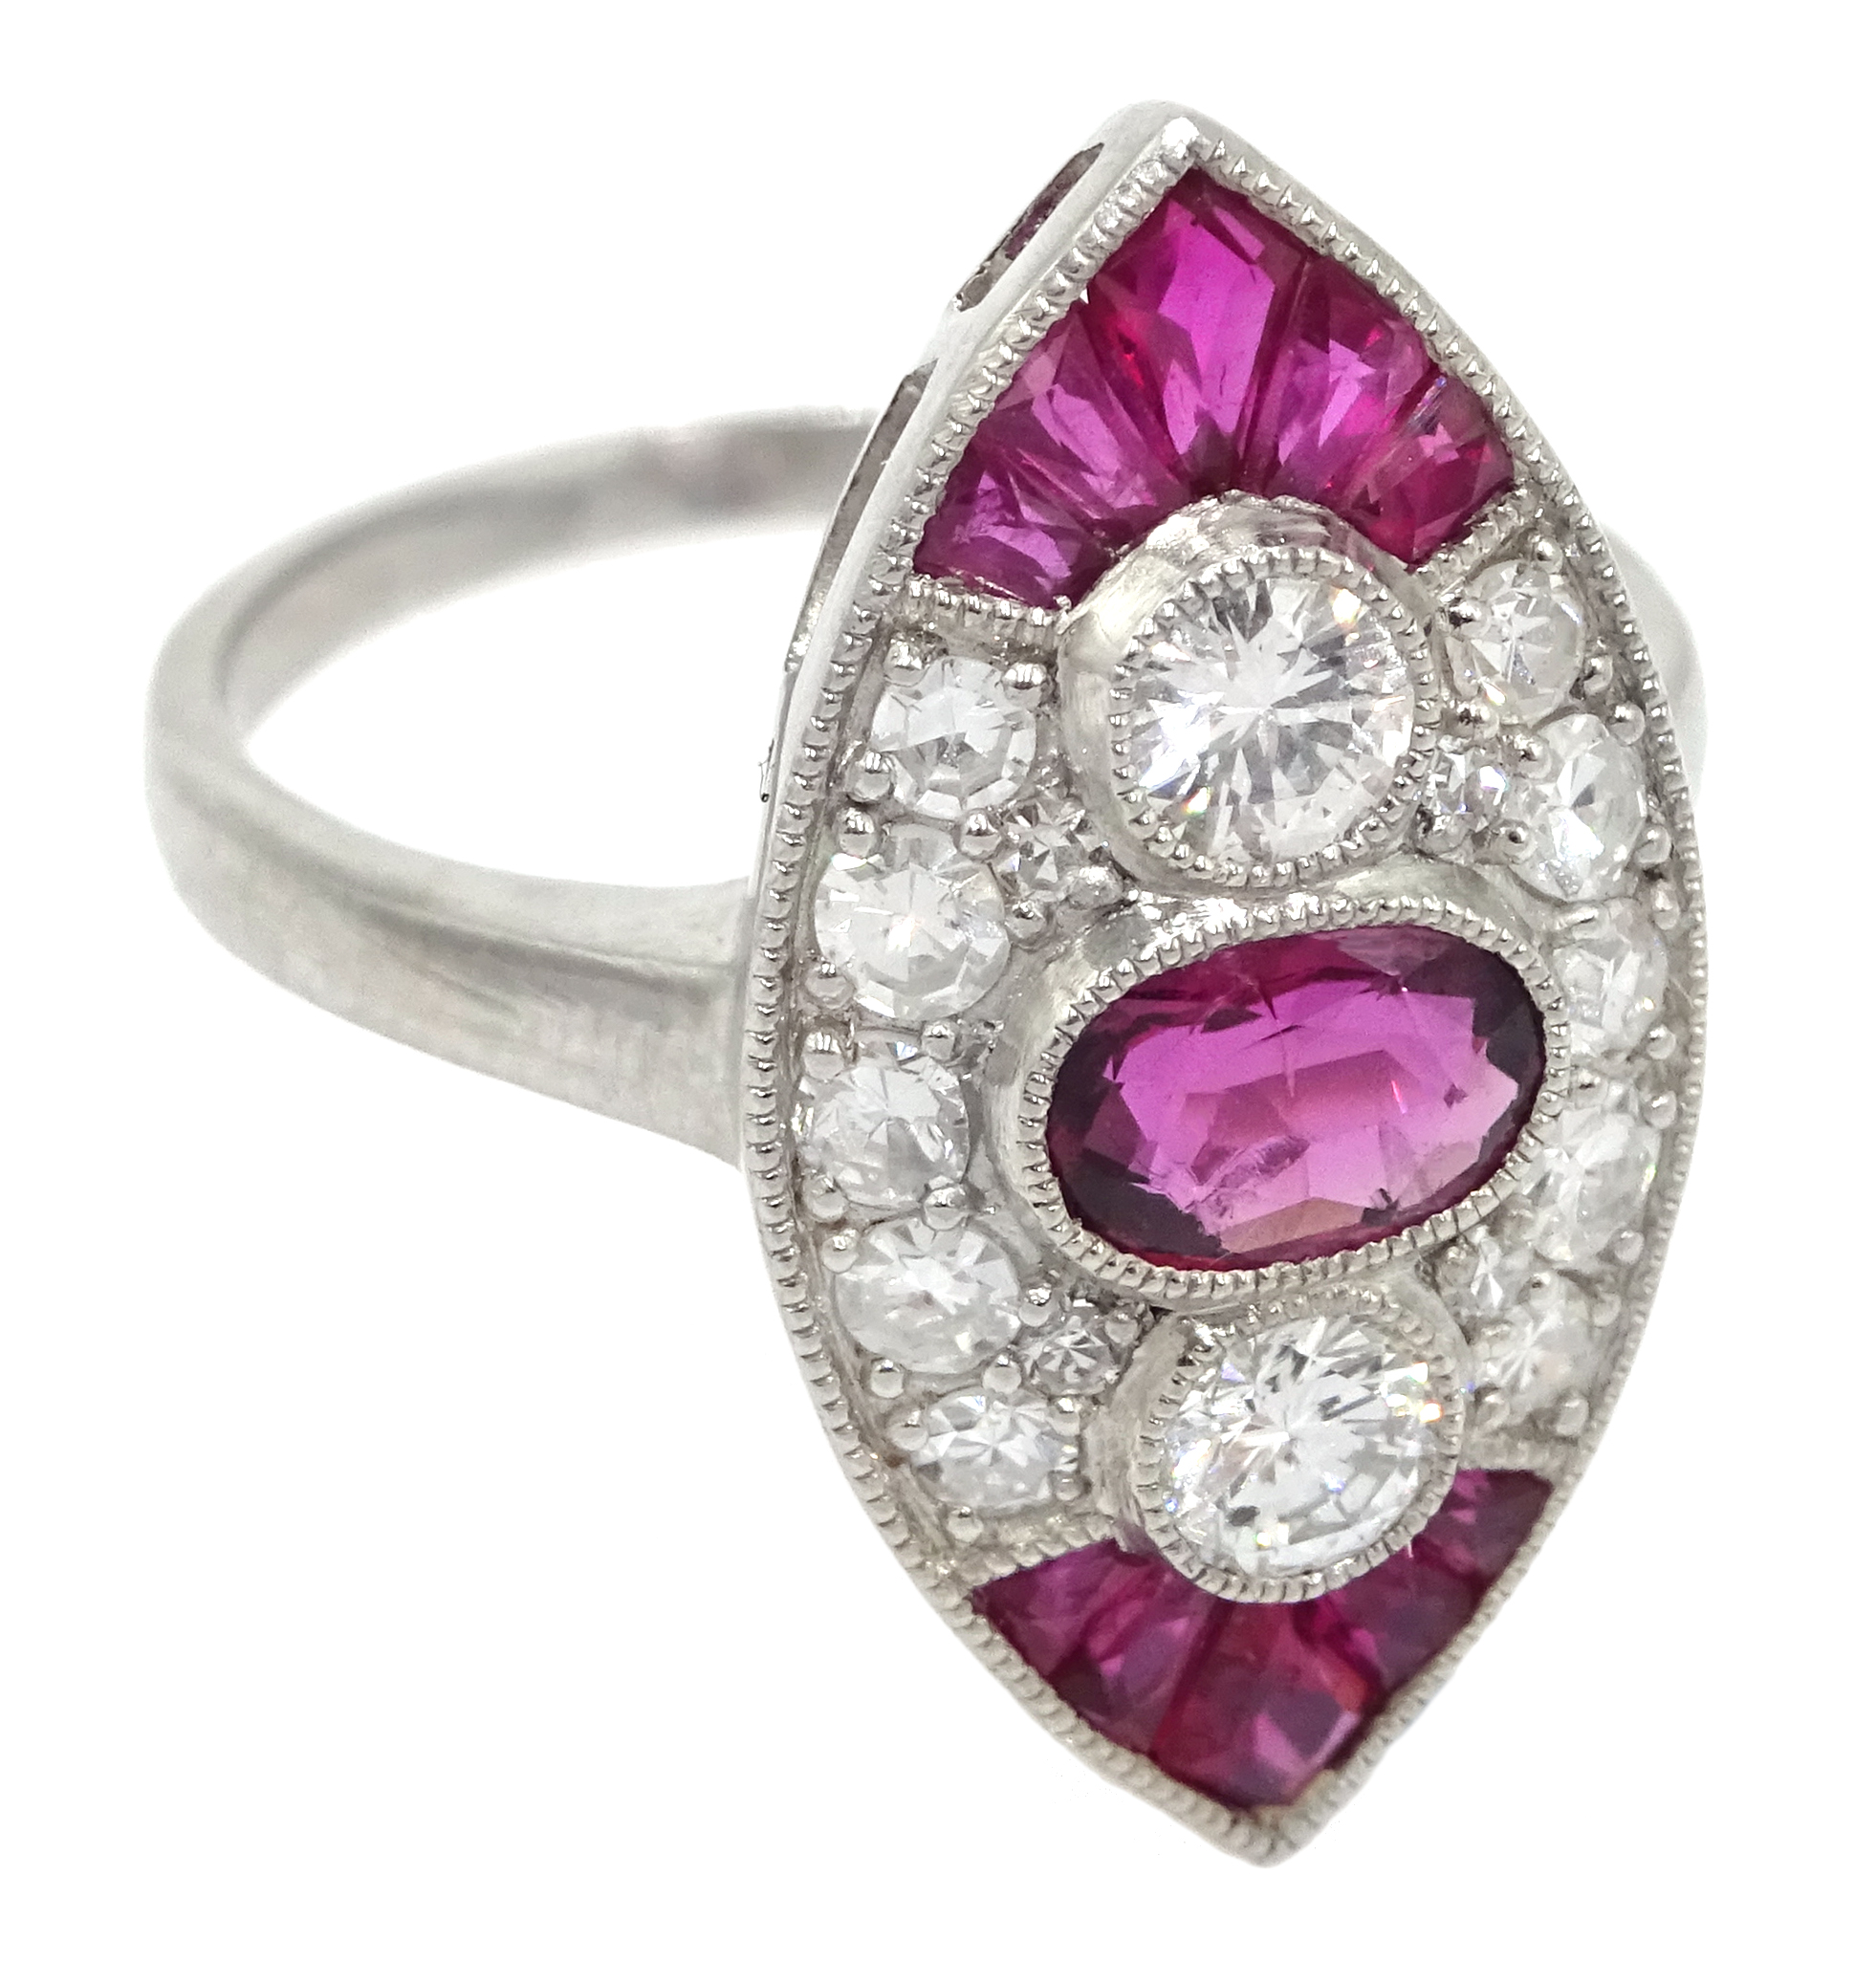 Victorian style marquise shaped platinum ring - Image 3 of 6